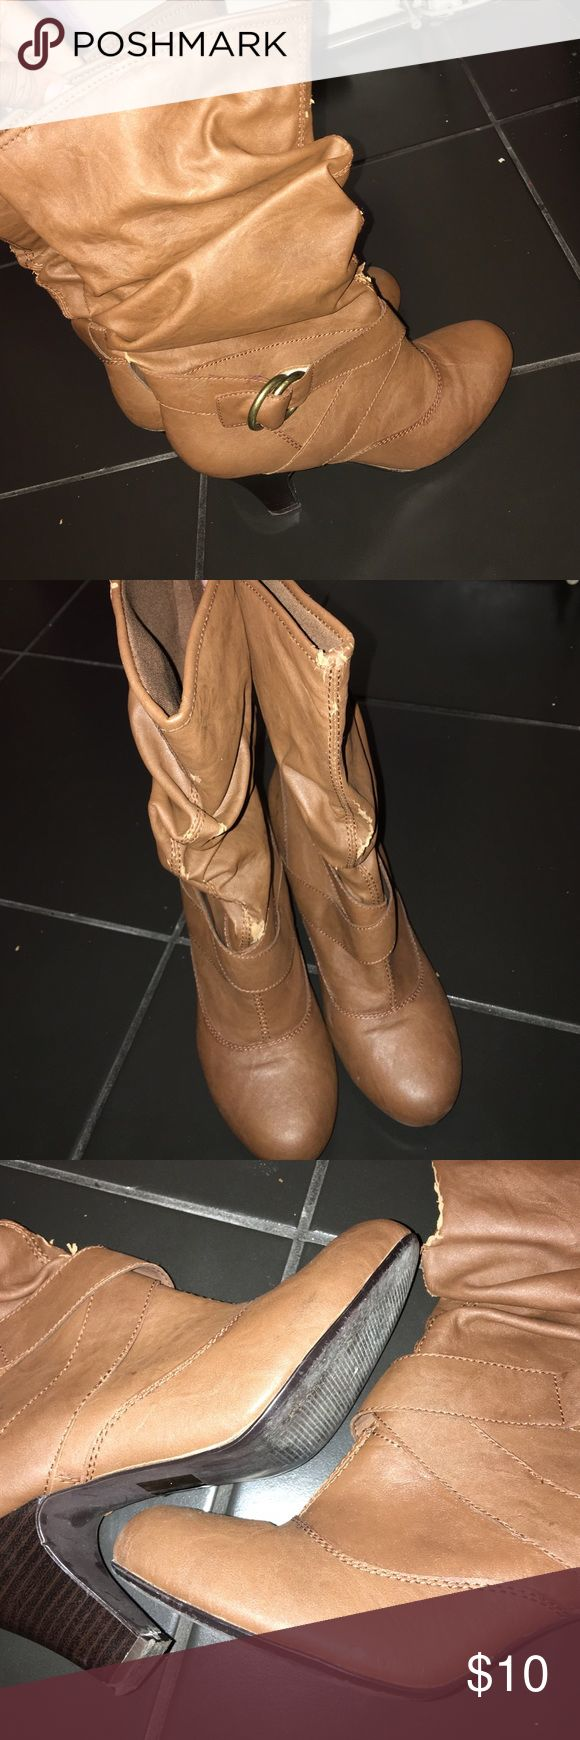 Cathy Jean Brown Heel Boots Brown heel boots. Worn gently. Don't want anymore. Cute for the winter. Cathy Jean Shoes Heeled Boots